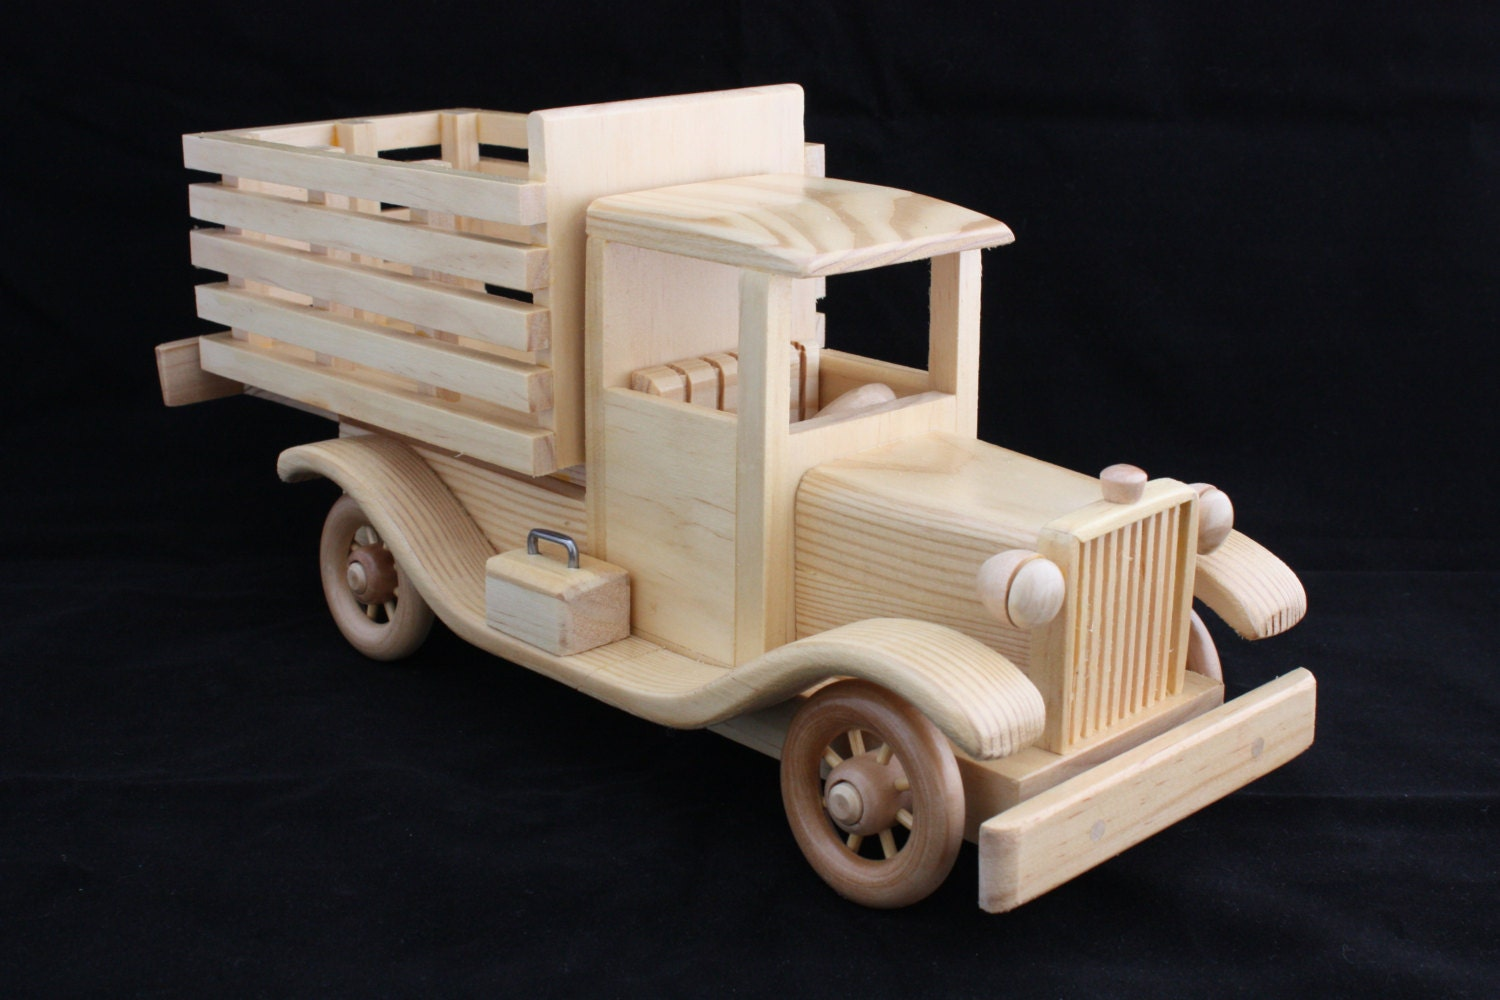 Marvelous photograph of Wooden Stake Bed Truck by PlayOnWoods on Etsy with #936638 color and 1500x1000 pixels